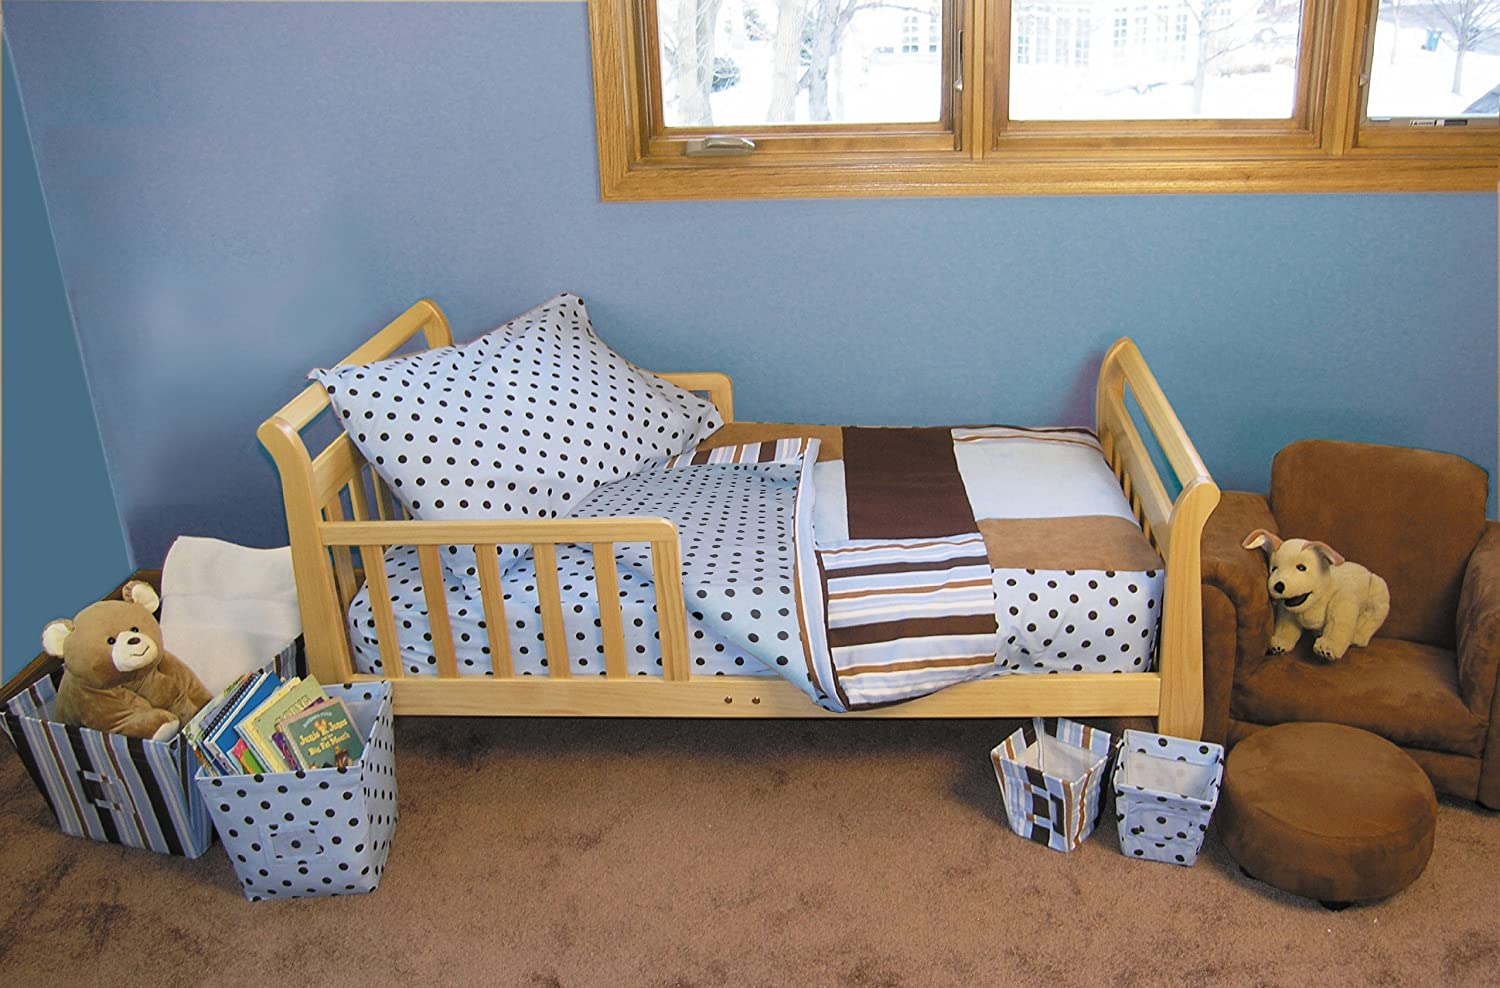 Trend Lab 4 Piece Toddler Bedding Set, Set, Max Max by 4 Trend Lab [並行輸入品] B001JABTL4, 釣具のキャスティング:6fa8161b --- ijpba.info